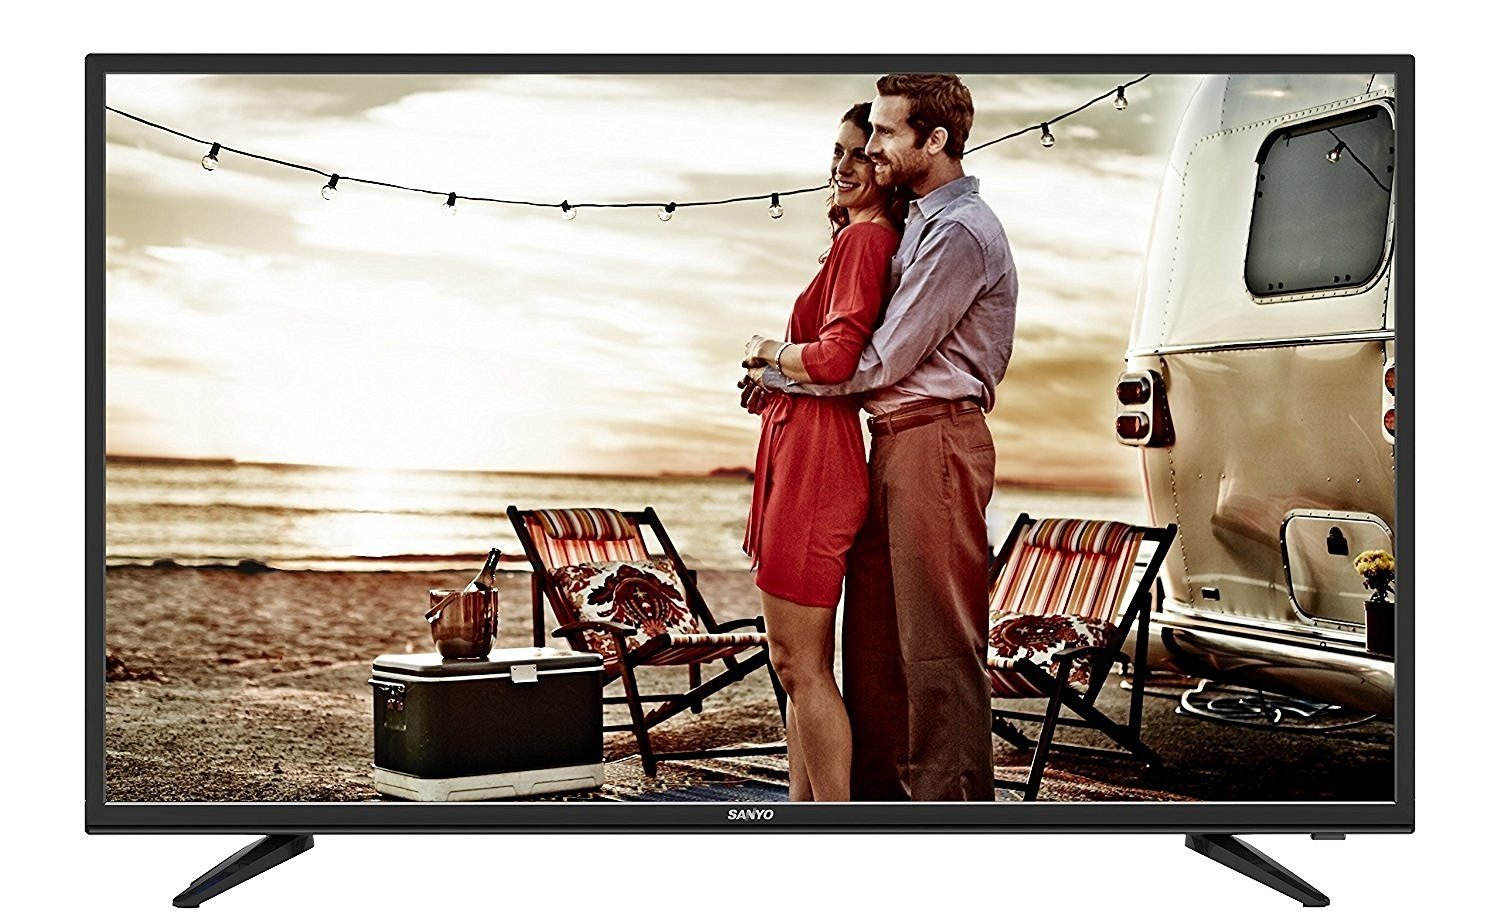 Sanyo 109 cm (43 inches) XT-43S7100F Full HD LED IPS TV (Black) By Amazon @ Rs.25,990